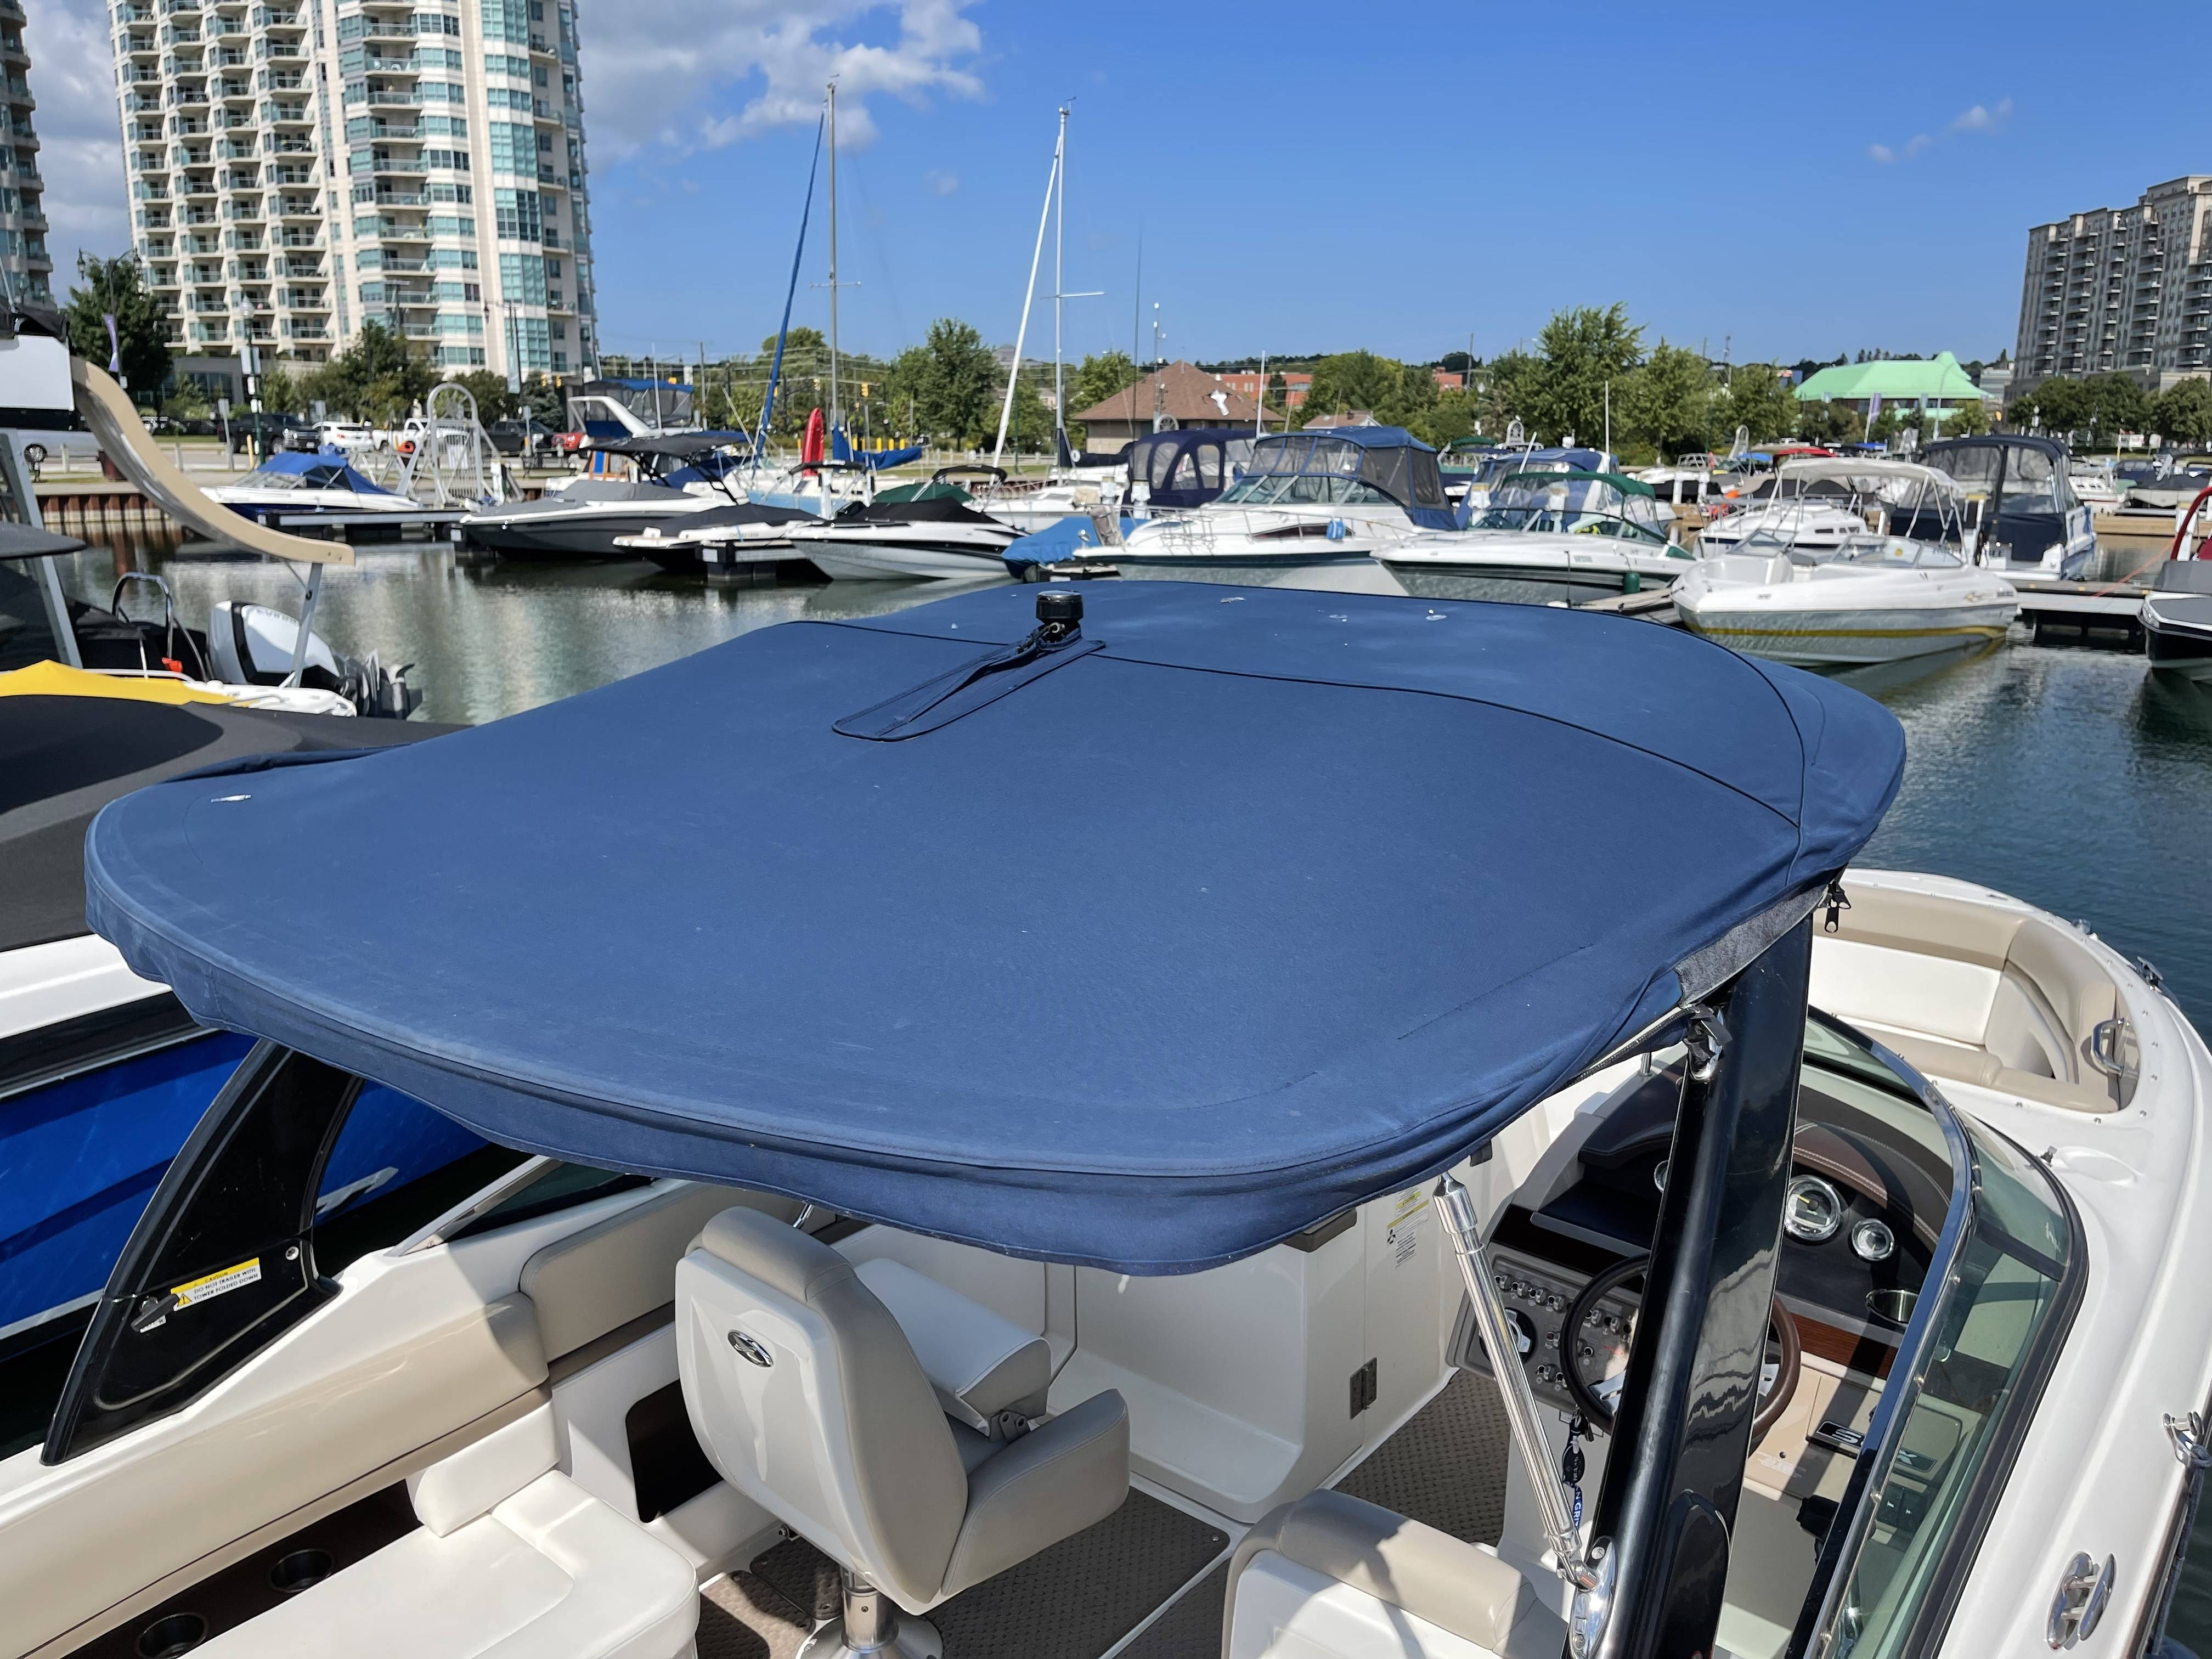 2012 Sea Ray boat for sale, model of the boat is 250 SLX & Image # 28 of 35